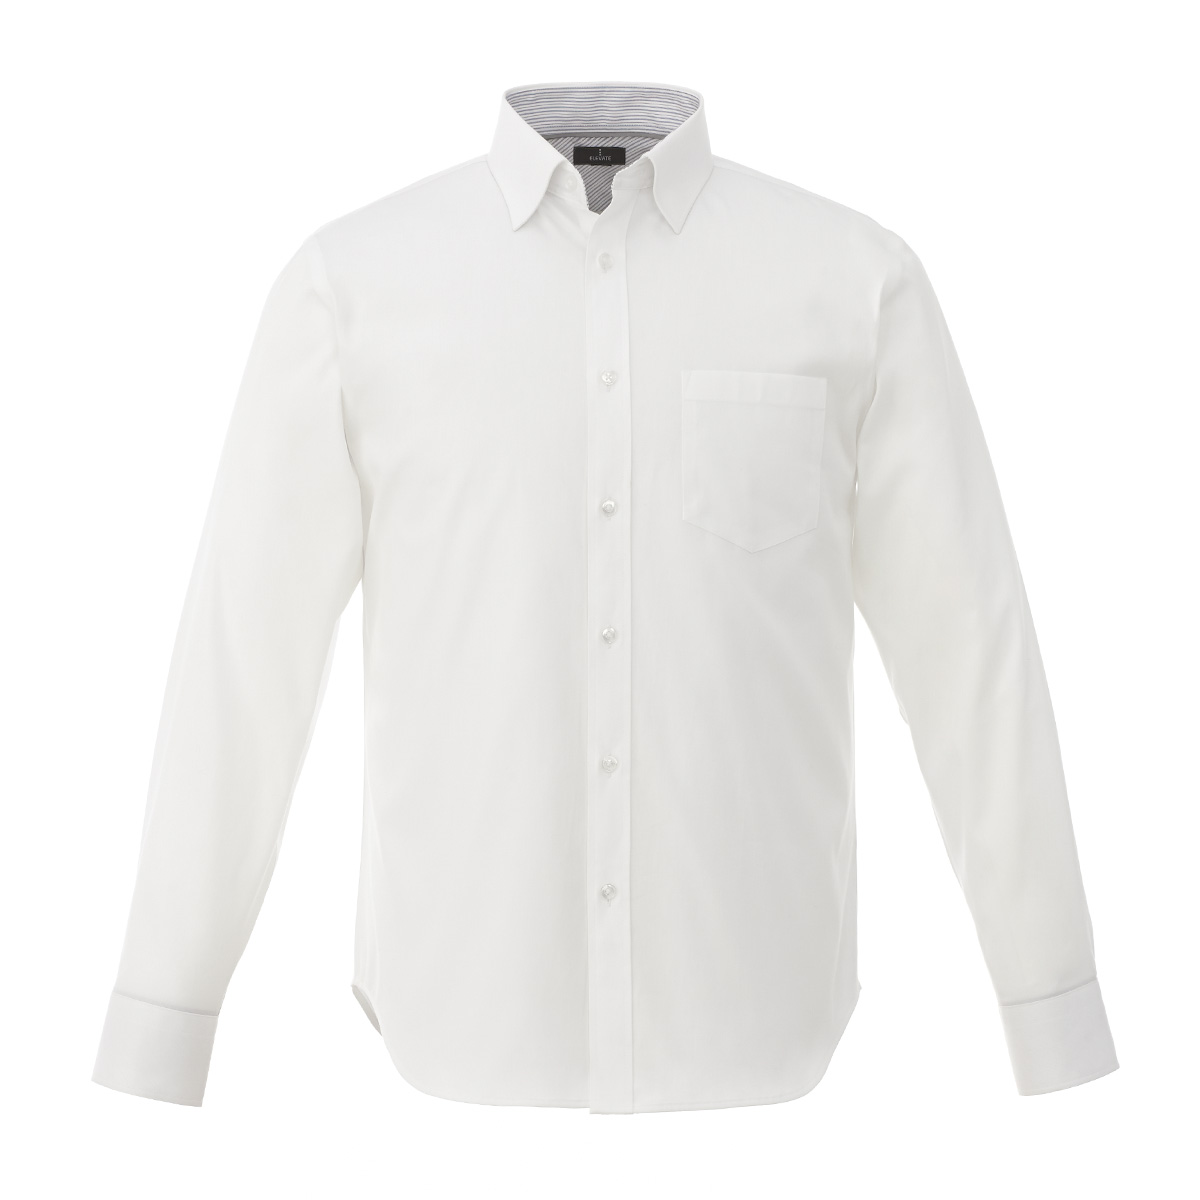 Cromwell Long Sleeve Men's Shirt, #17309 - Embroidered